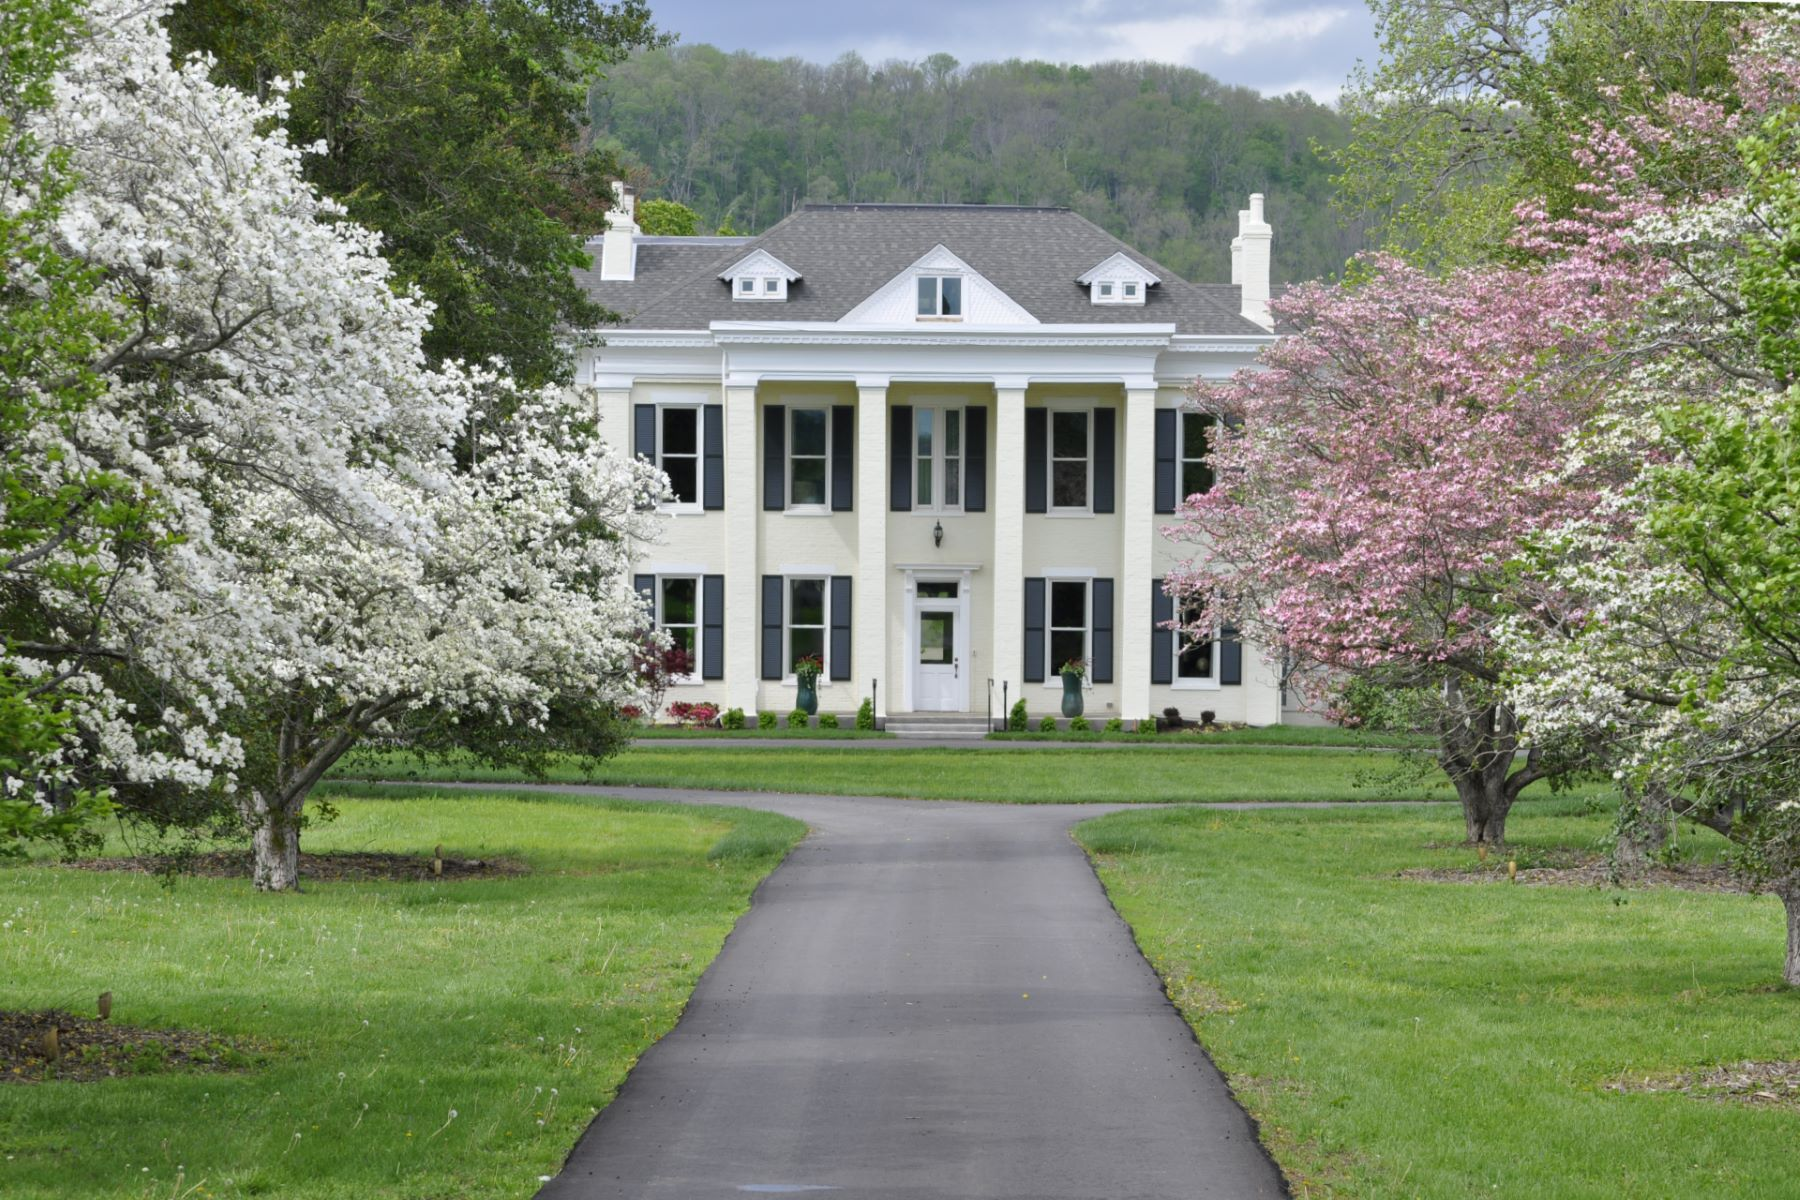 Single Family Home for Sale at Historic Riverside Inn on the Ohio River 85 US Hwy 42 East Warsaw, Kentucky 41095 United States